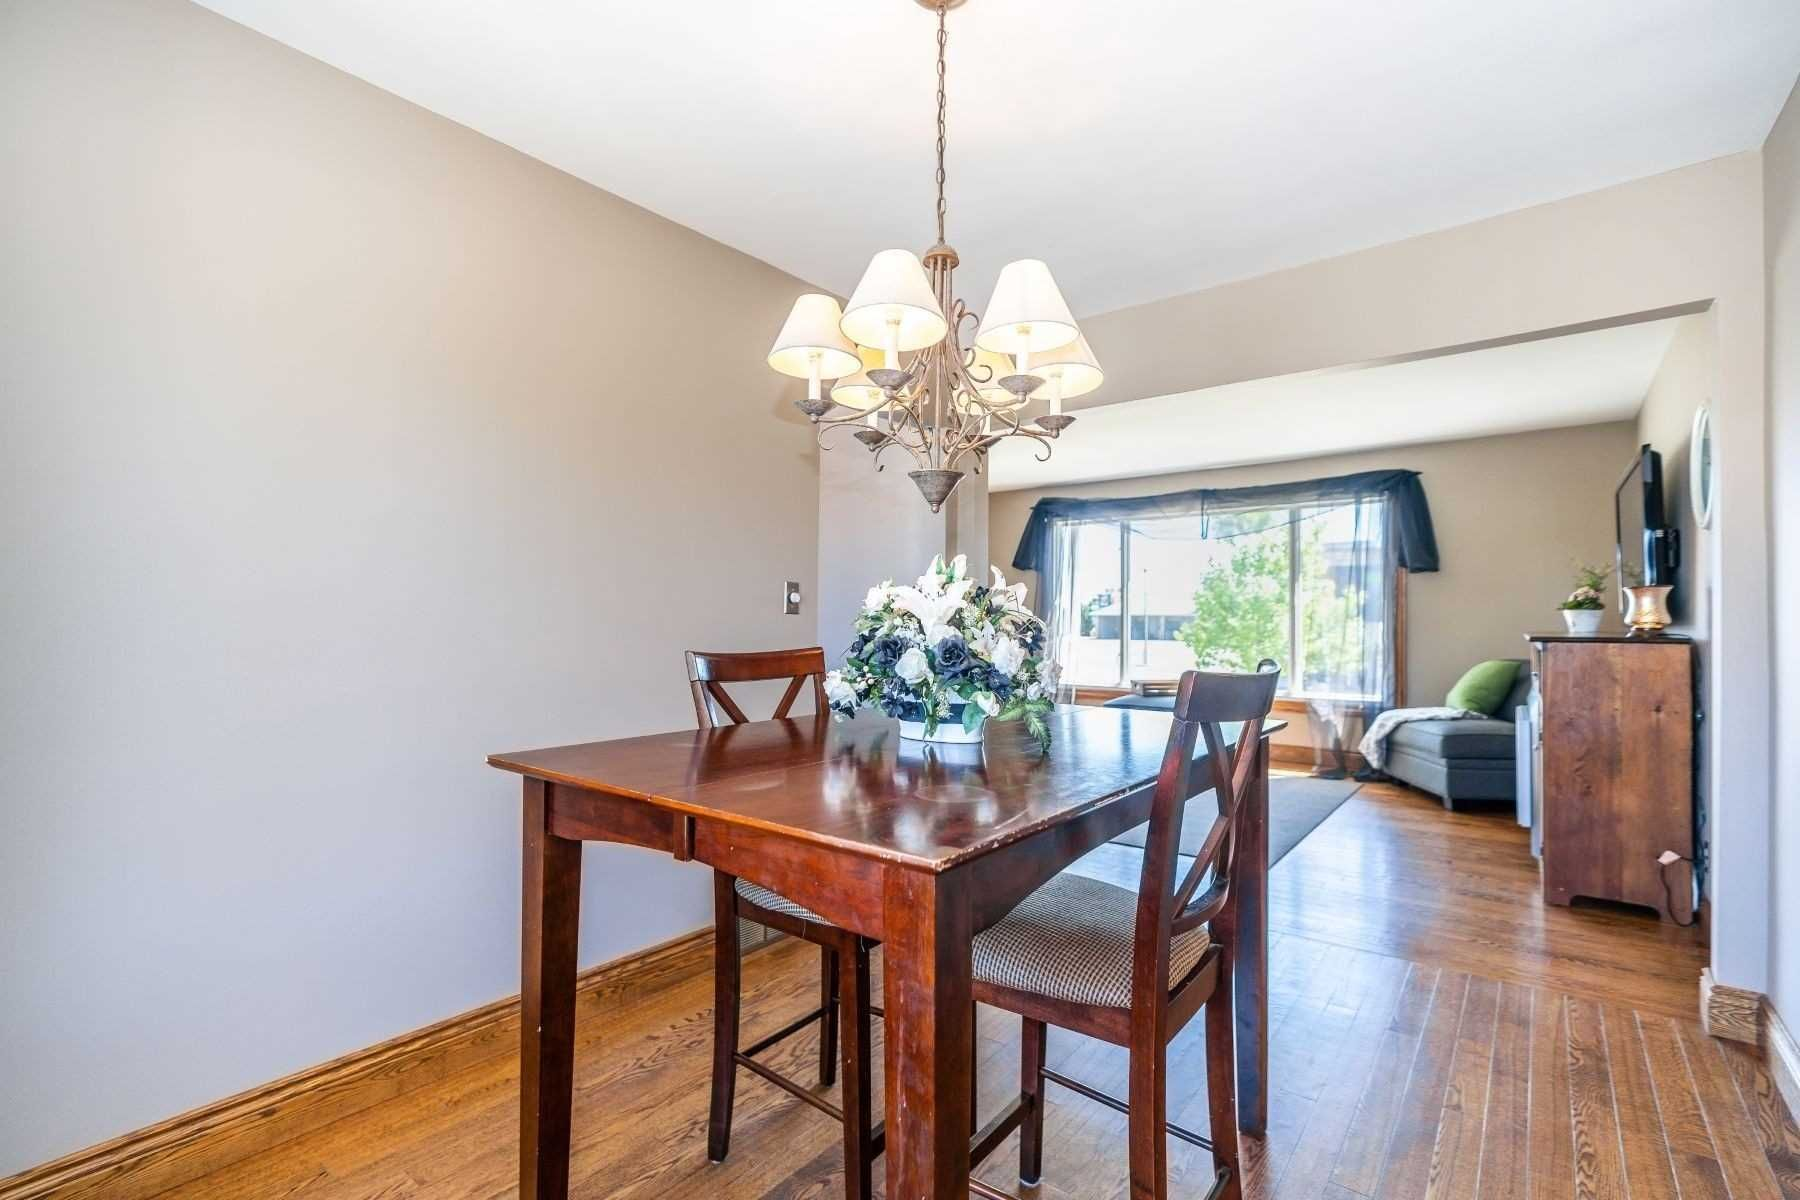 Photo 25: Photos: 26 East Lawn Street in Oshawa: Donevan House (Bungalow) for sale : MLS®# E4818284